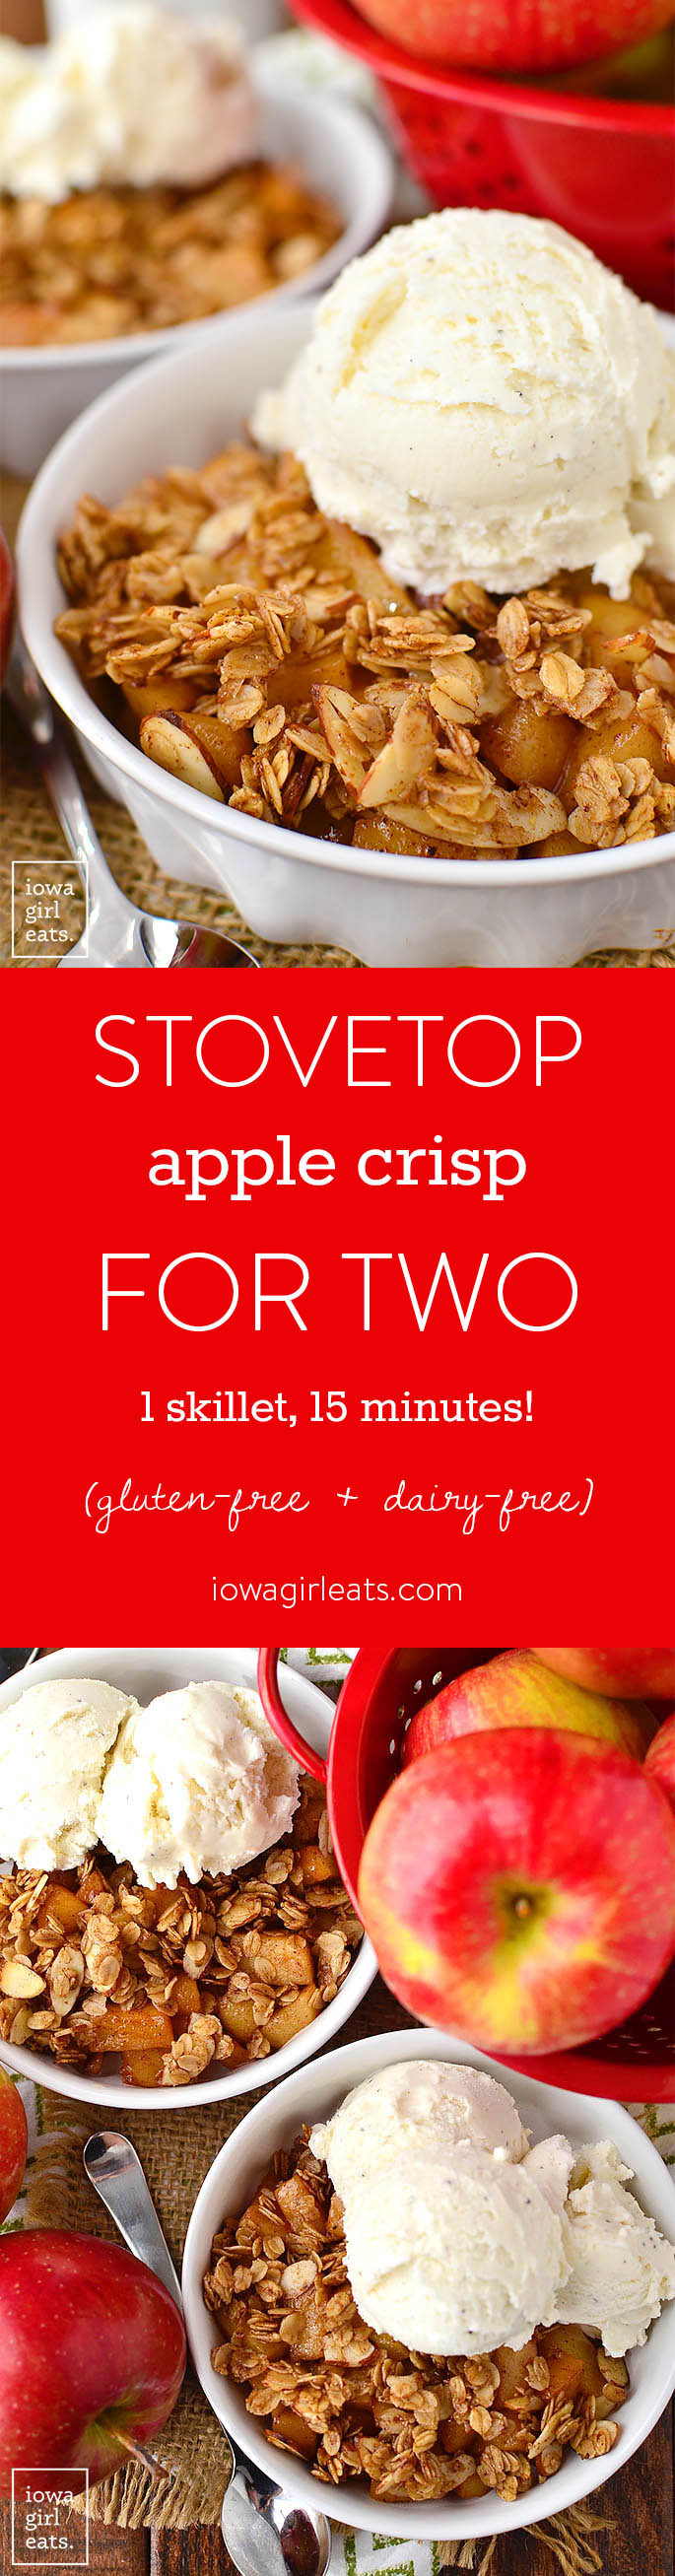 Stovetop Apple Crisp for Two is for when you're craving apple crisp, but don't want to make a big batch that has to bake for an hour. Just 1 skillet and 15 minutes is all you need! | iowagirleats.com